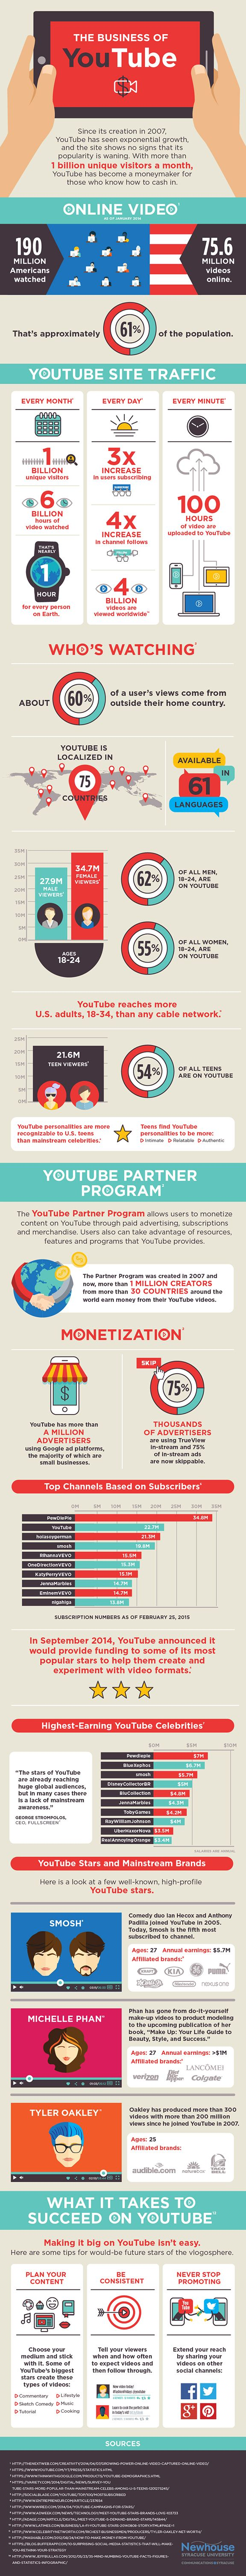 The Business of YouTube #infographic